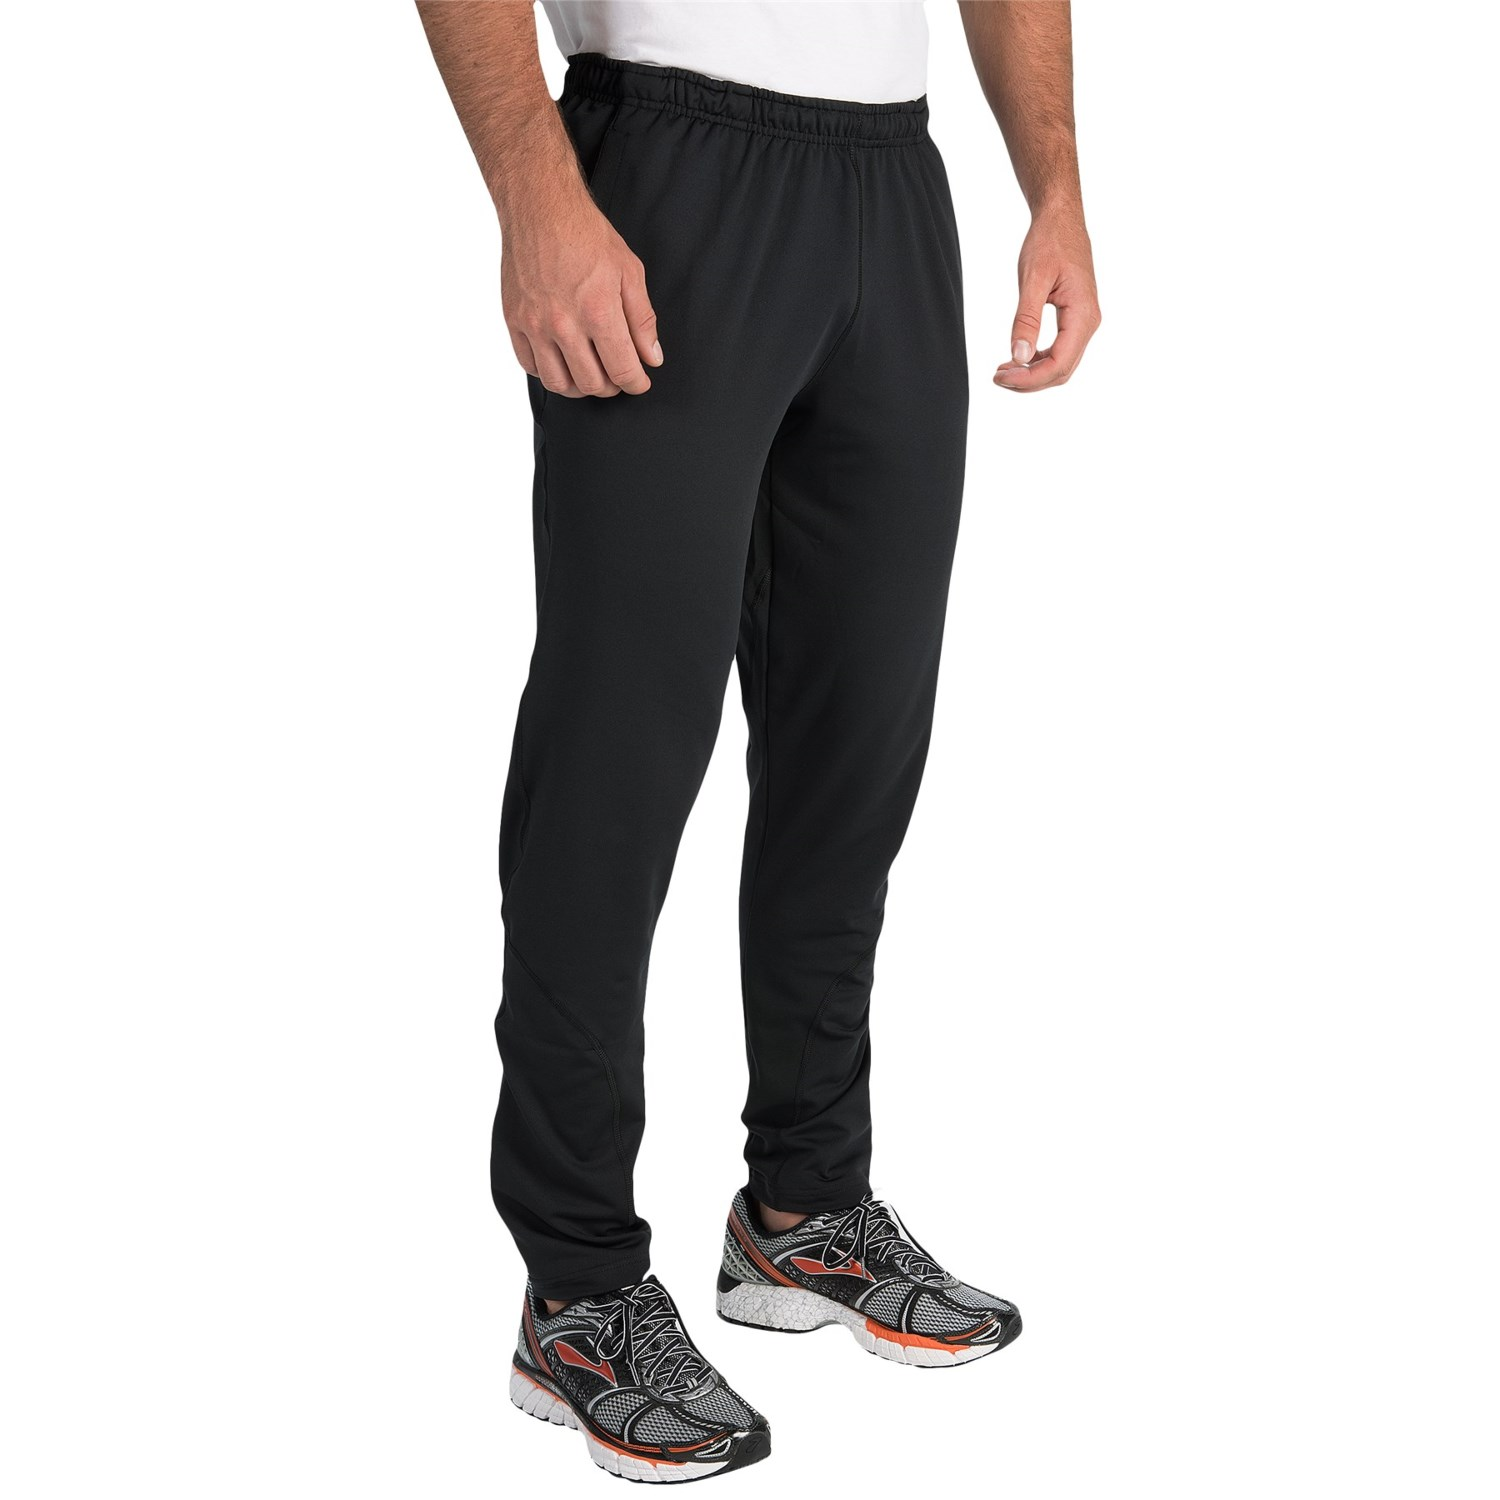 men's kilowatt pants Description: Durable for tough sessions in the gym yet comfortable enough to wear the rest of the day these abrasion-resistant woven training pants are crafted with a straight fit and articulated knees.